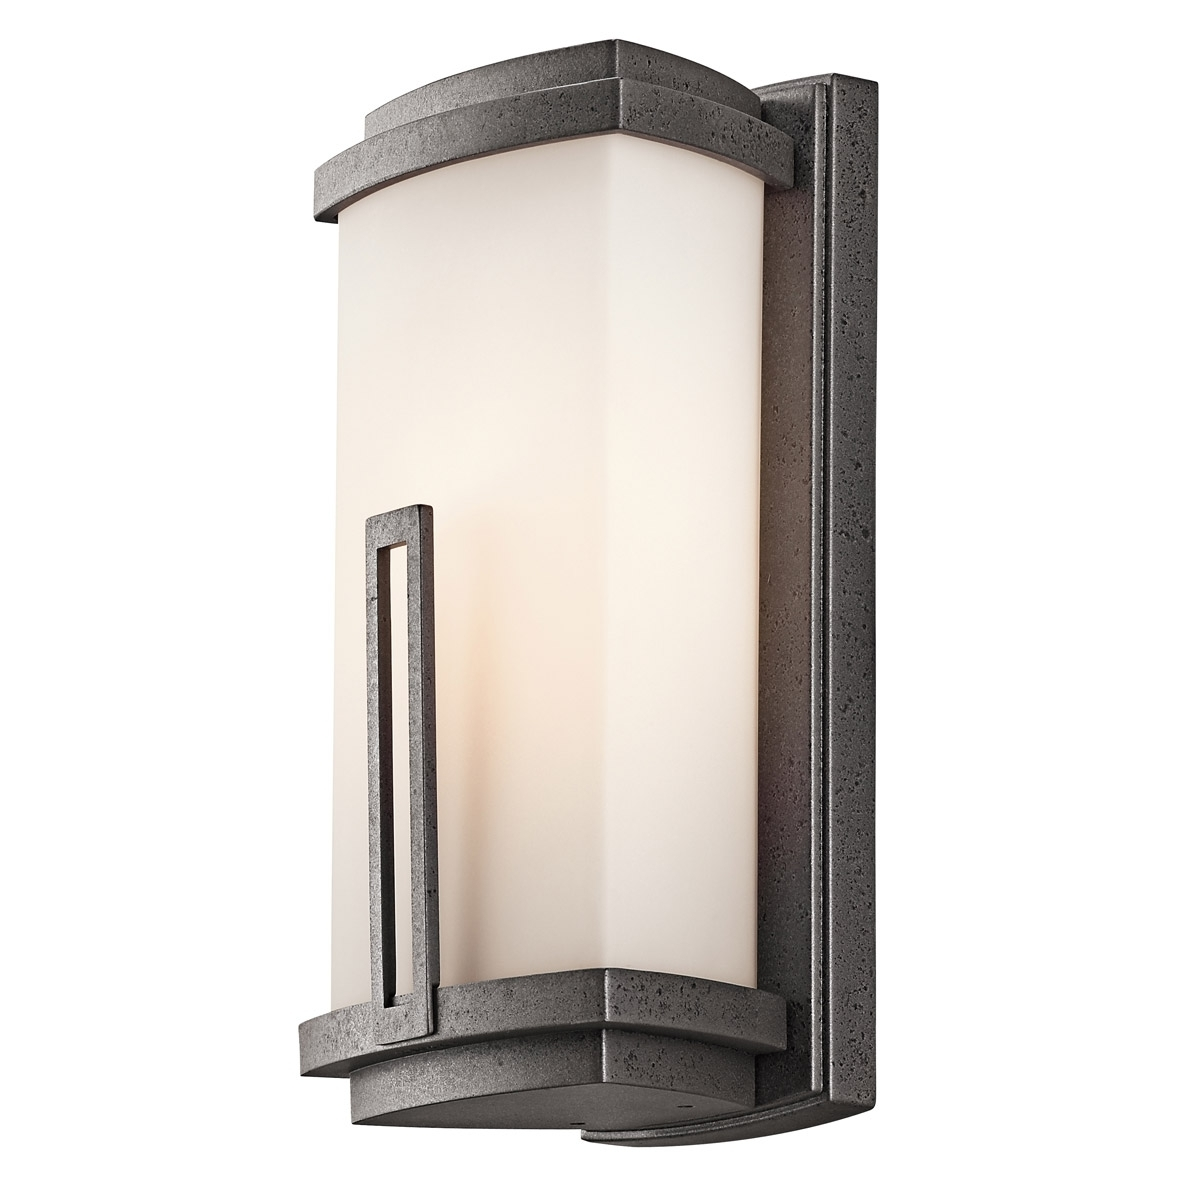 Most Current Kichler Outdoor Lighting Wall Sconces Inside Kichler 9244 Modern 2 Light Outdoor Wall Sconce • Wall Sconces (View 5 of 20)